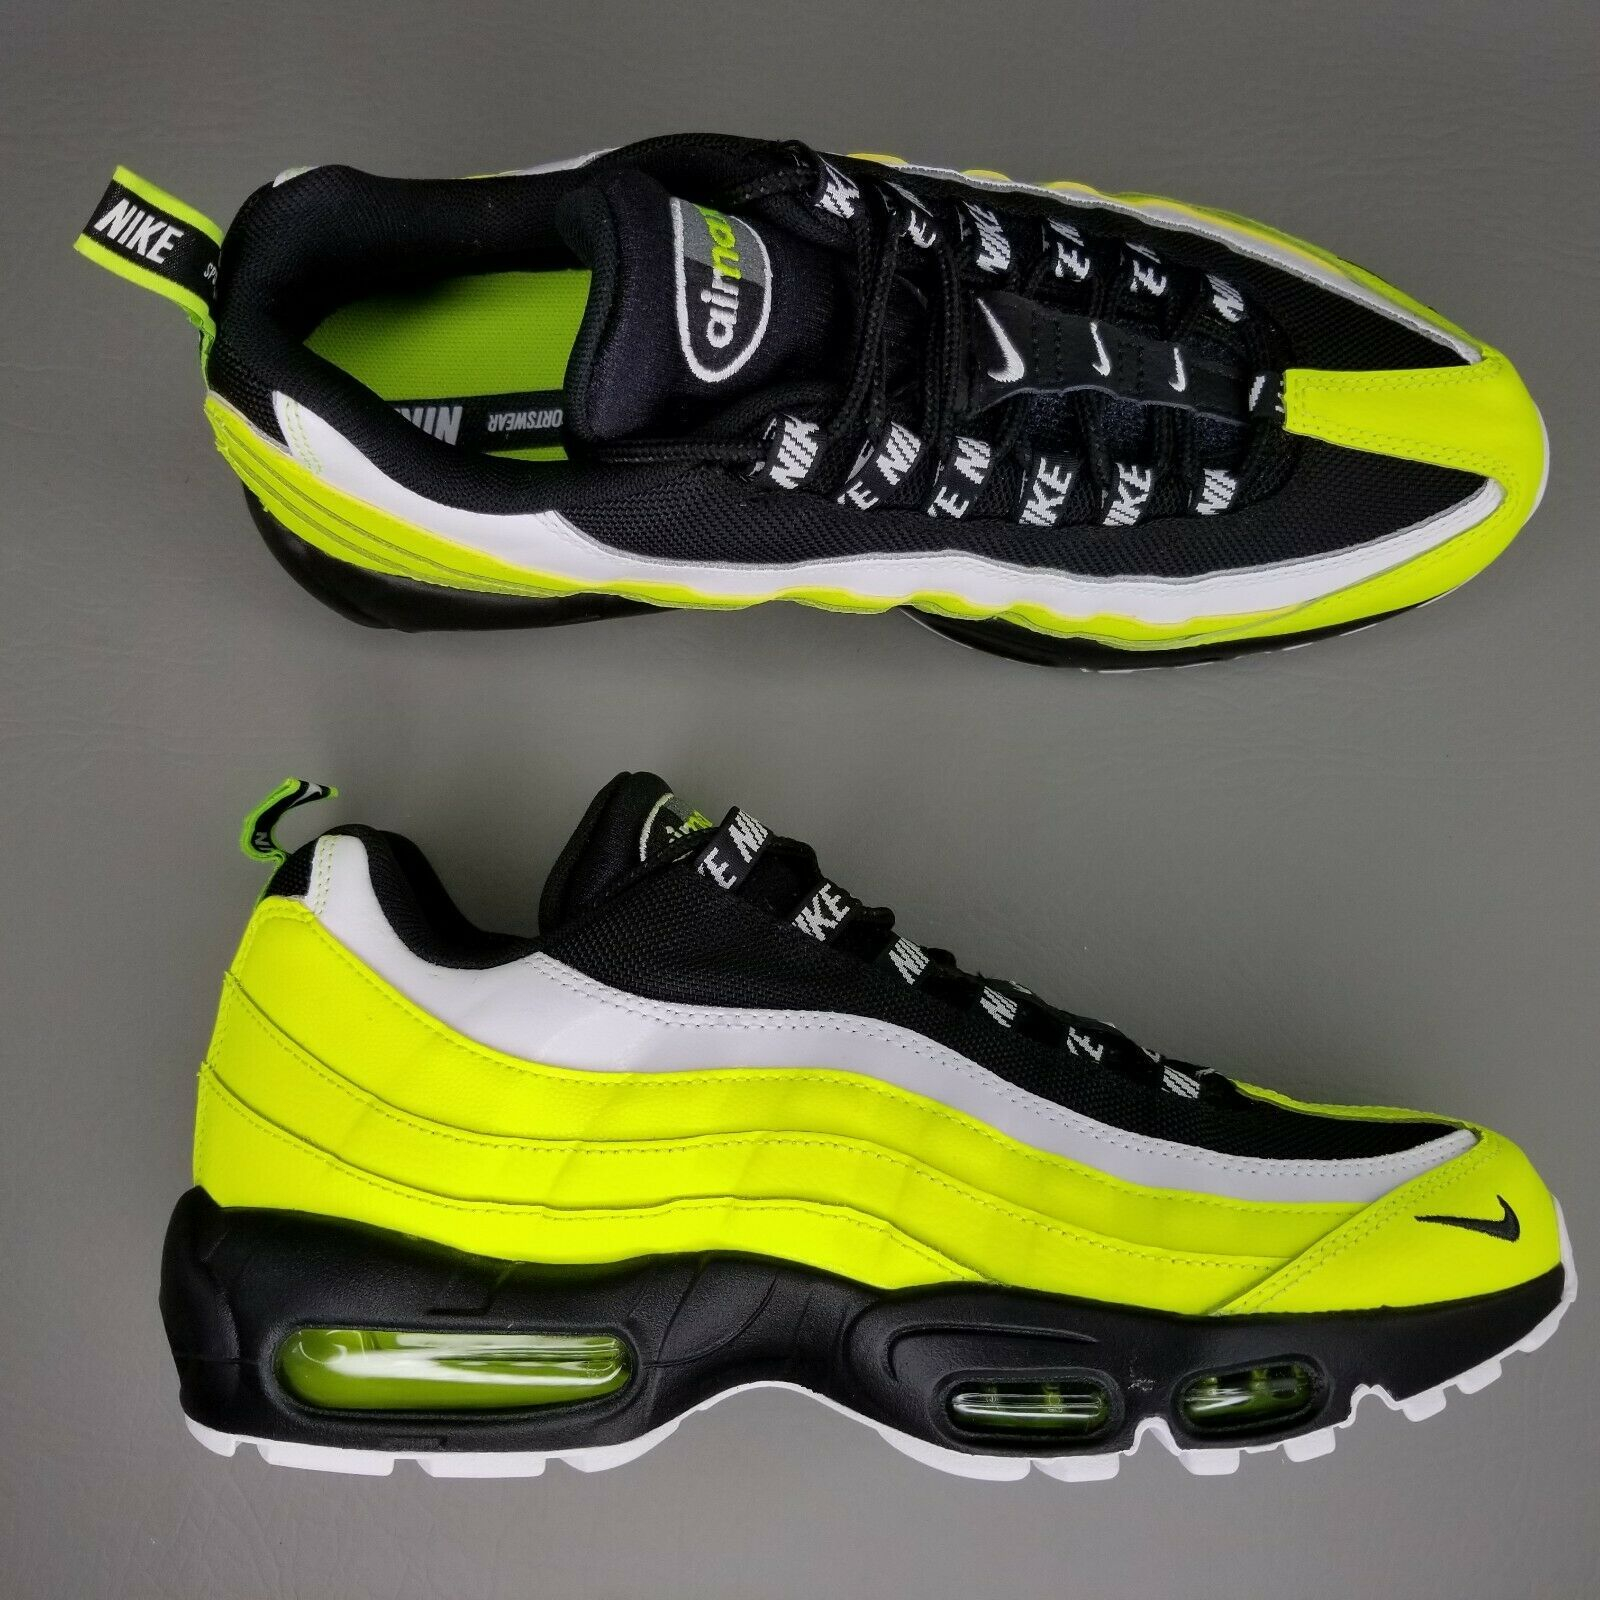 Nike Air Max 95 PRM Athletic Shoes Mens Size 9.5 Leather Volt Glow Black White